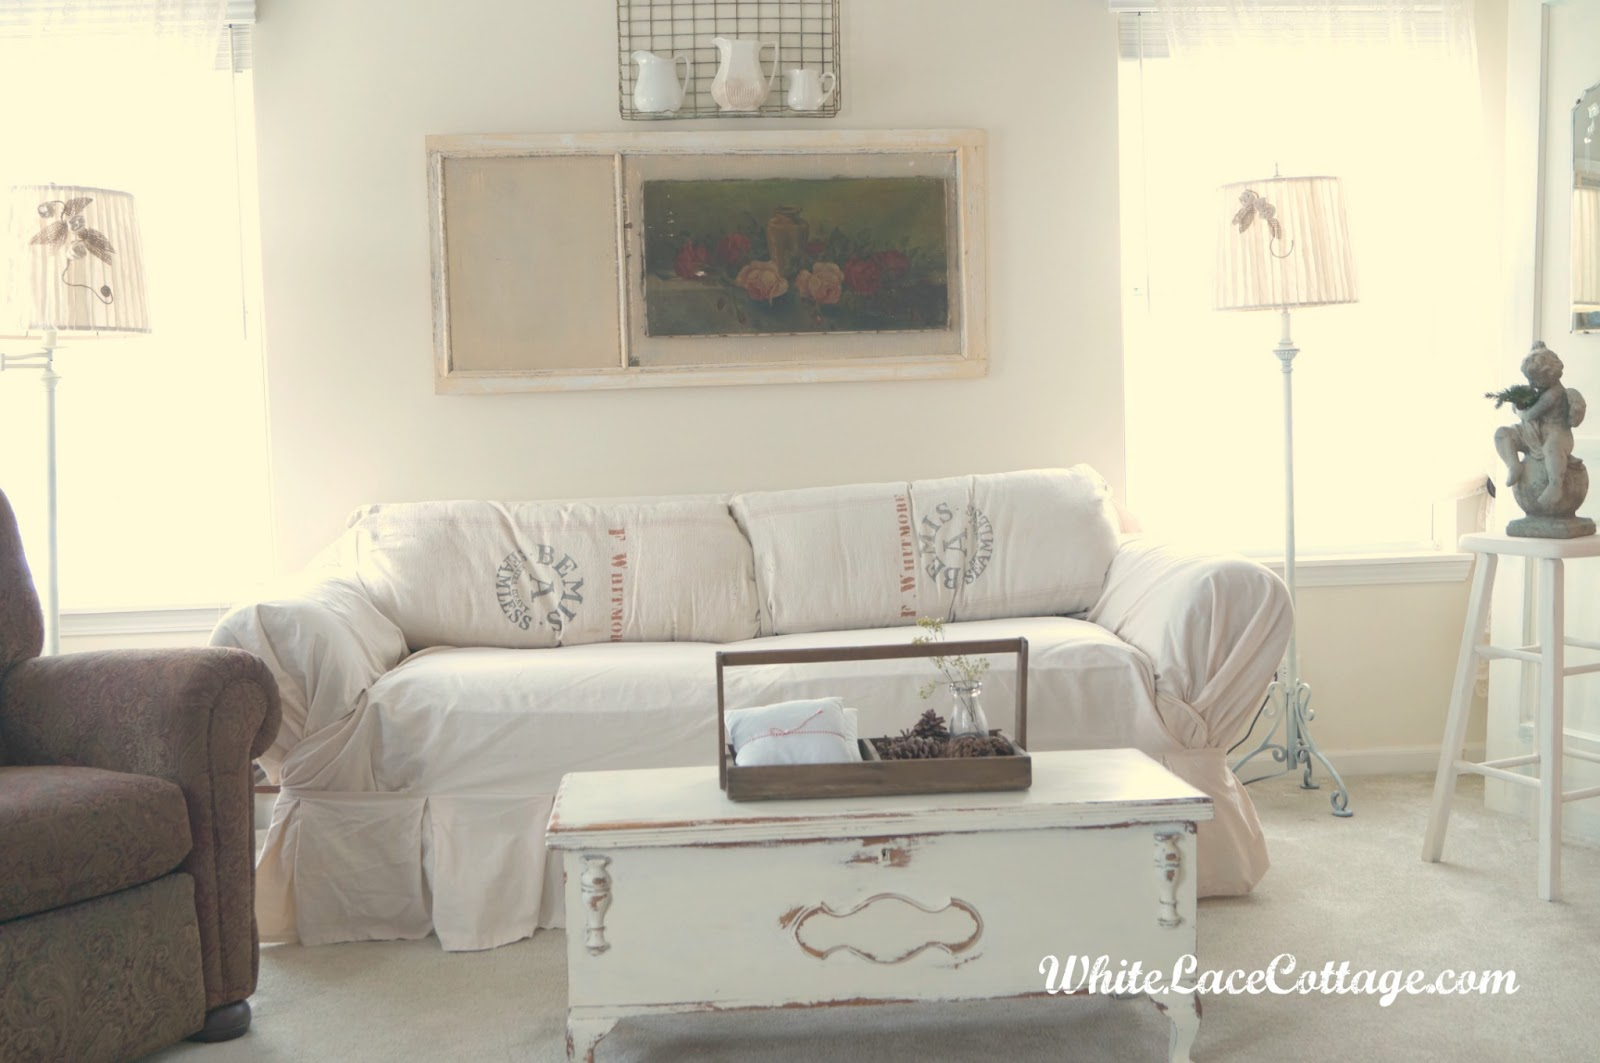 slipcovers pulaubatik for ikea ideas white design photo phenomenal best sofa covers slipcover